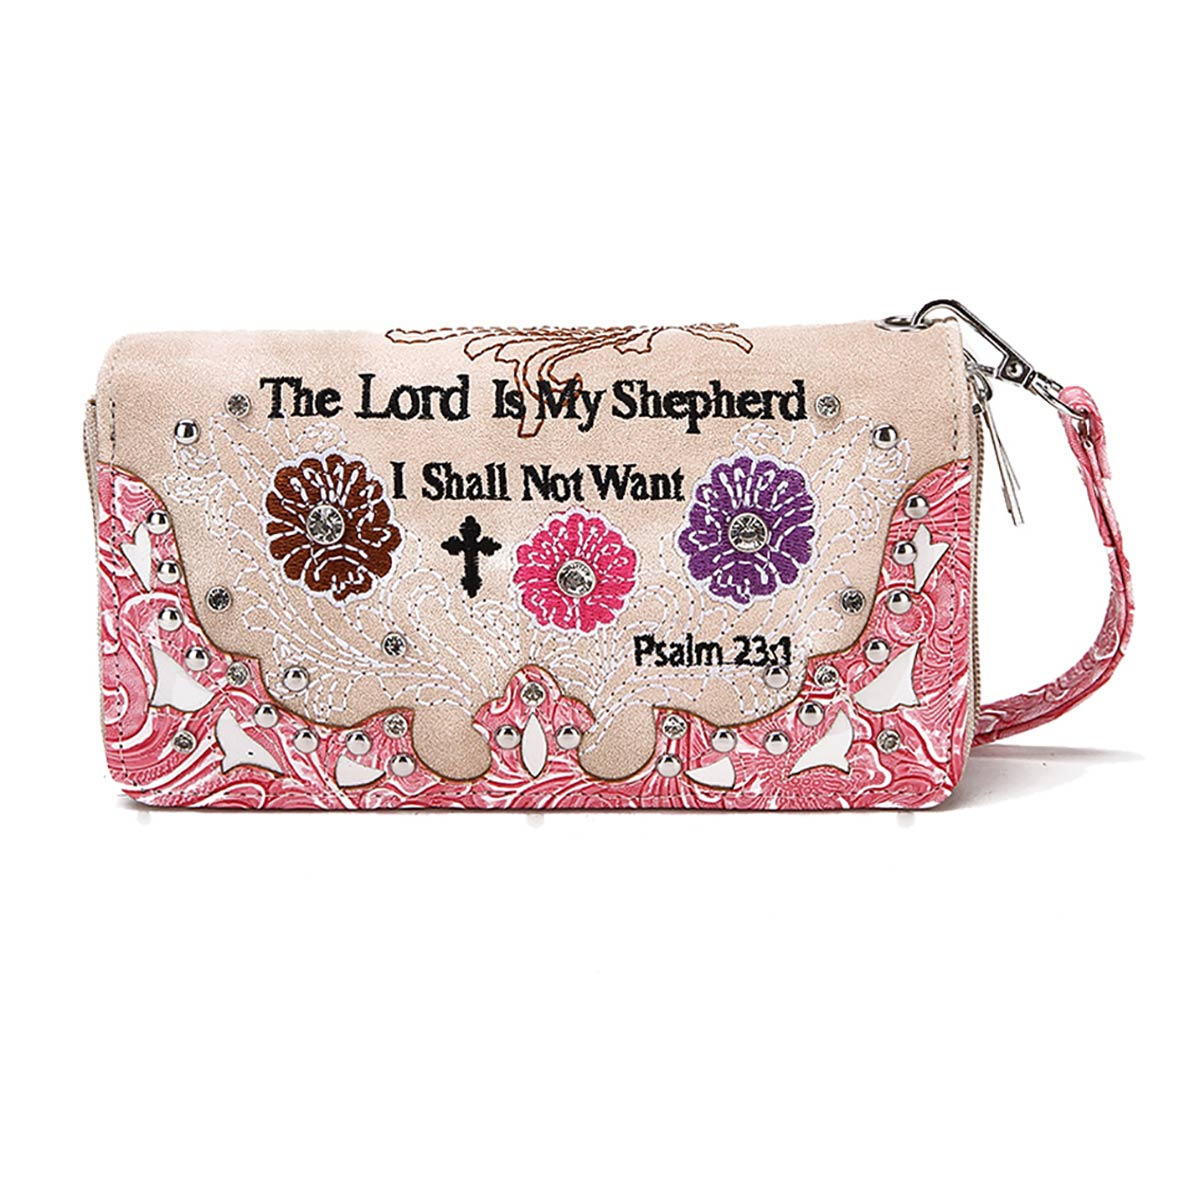 'Psalm 23:1' Biblical Word Wallet Fuchsia